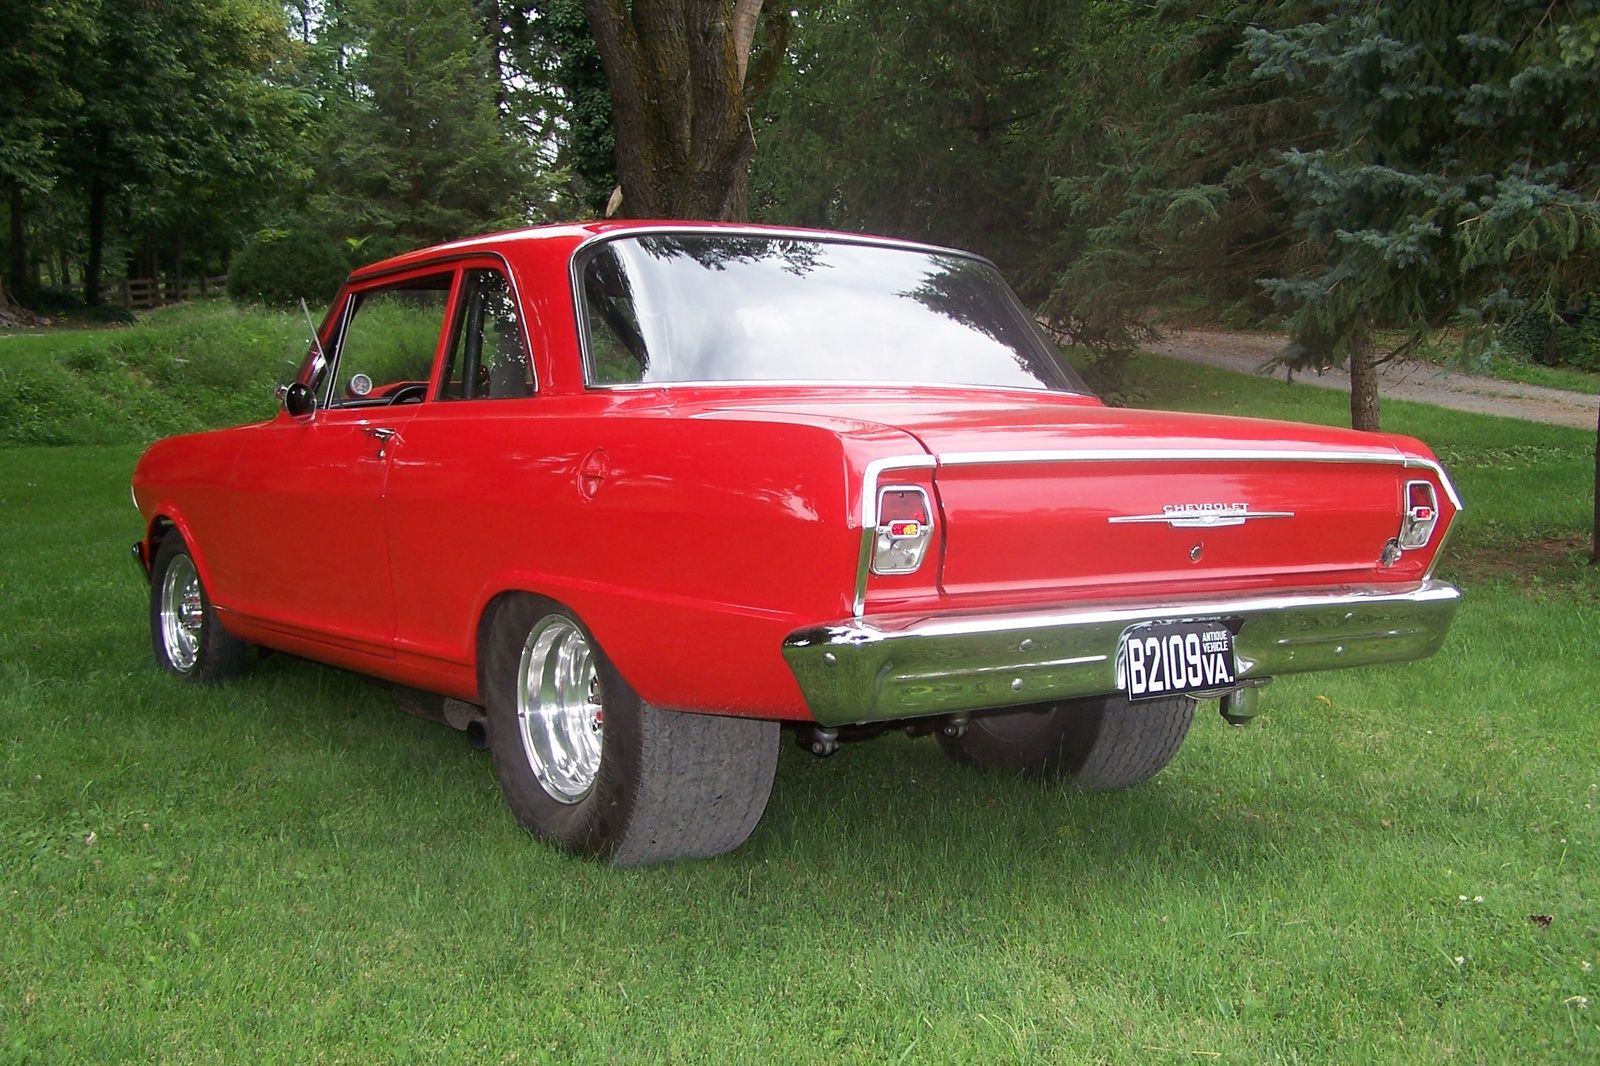 1963 Chevrolet Nova Maintenance/restoration of old/vintage ...